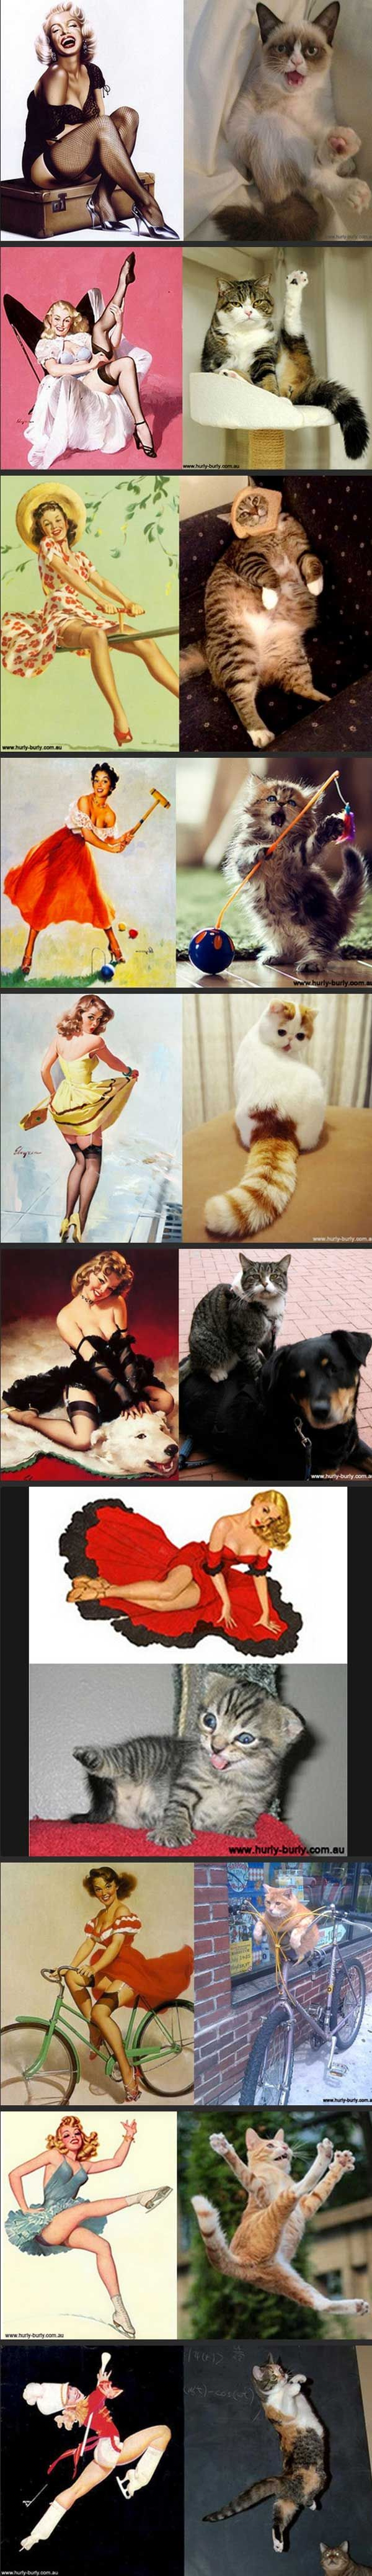 To go with the cats who look like male models ;)